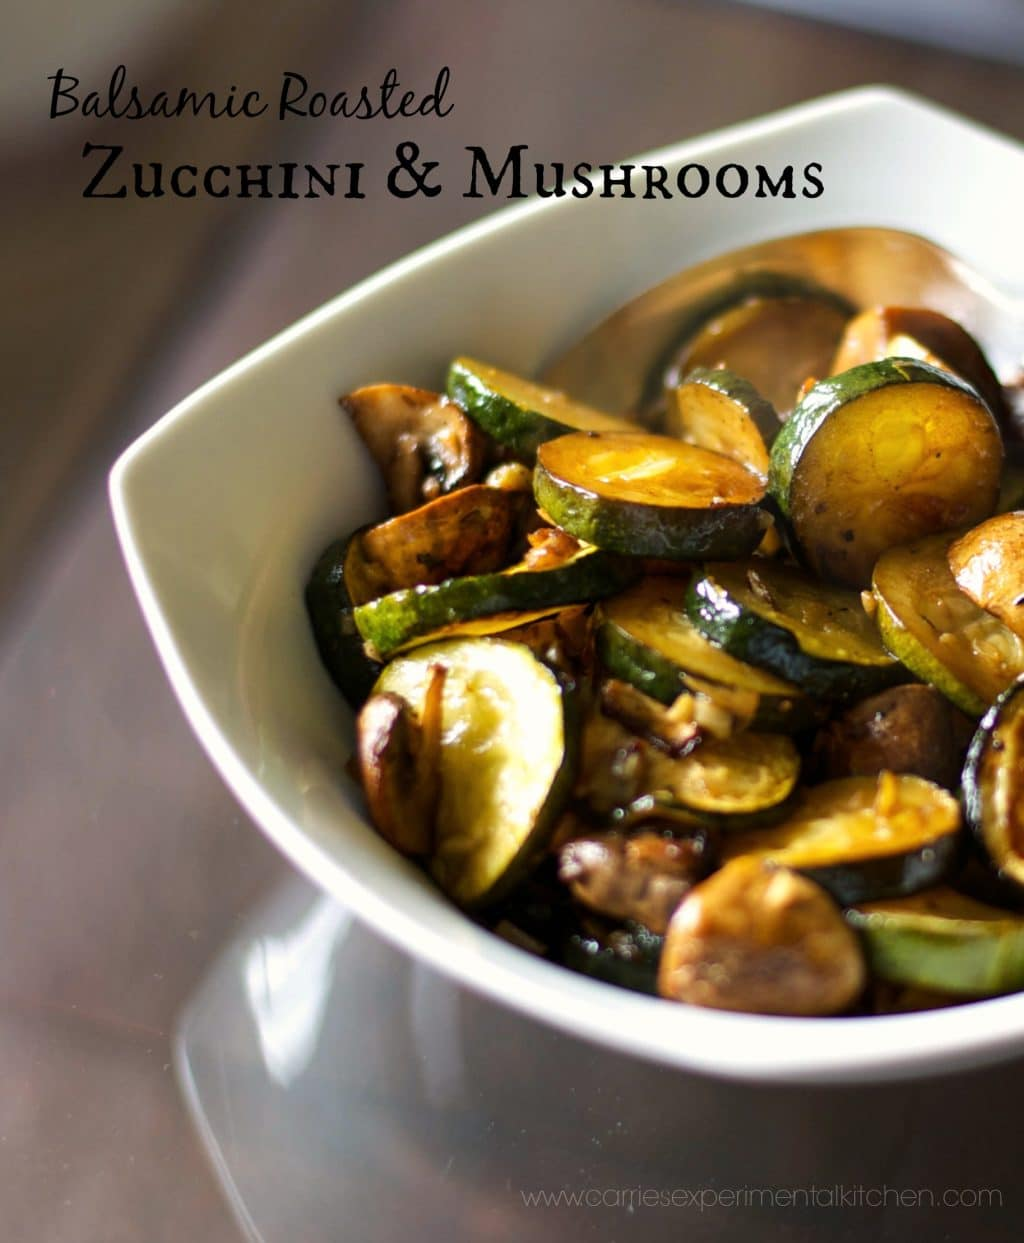 Kitchen Garden Mushrooms Balsamic Roasted Zucchini Mushrooms Carries Experimental Kitchen